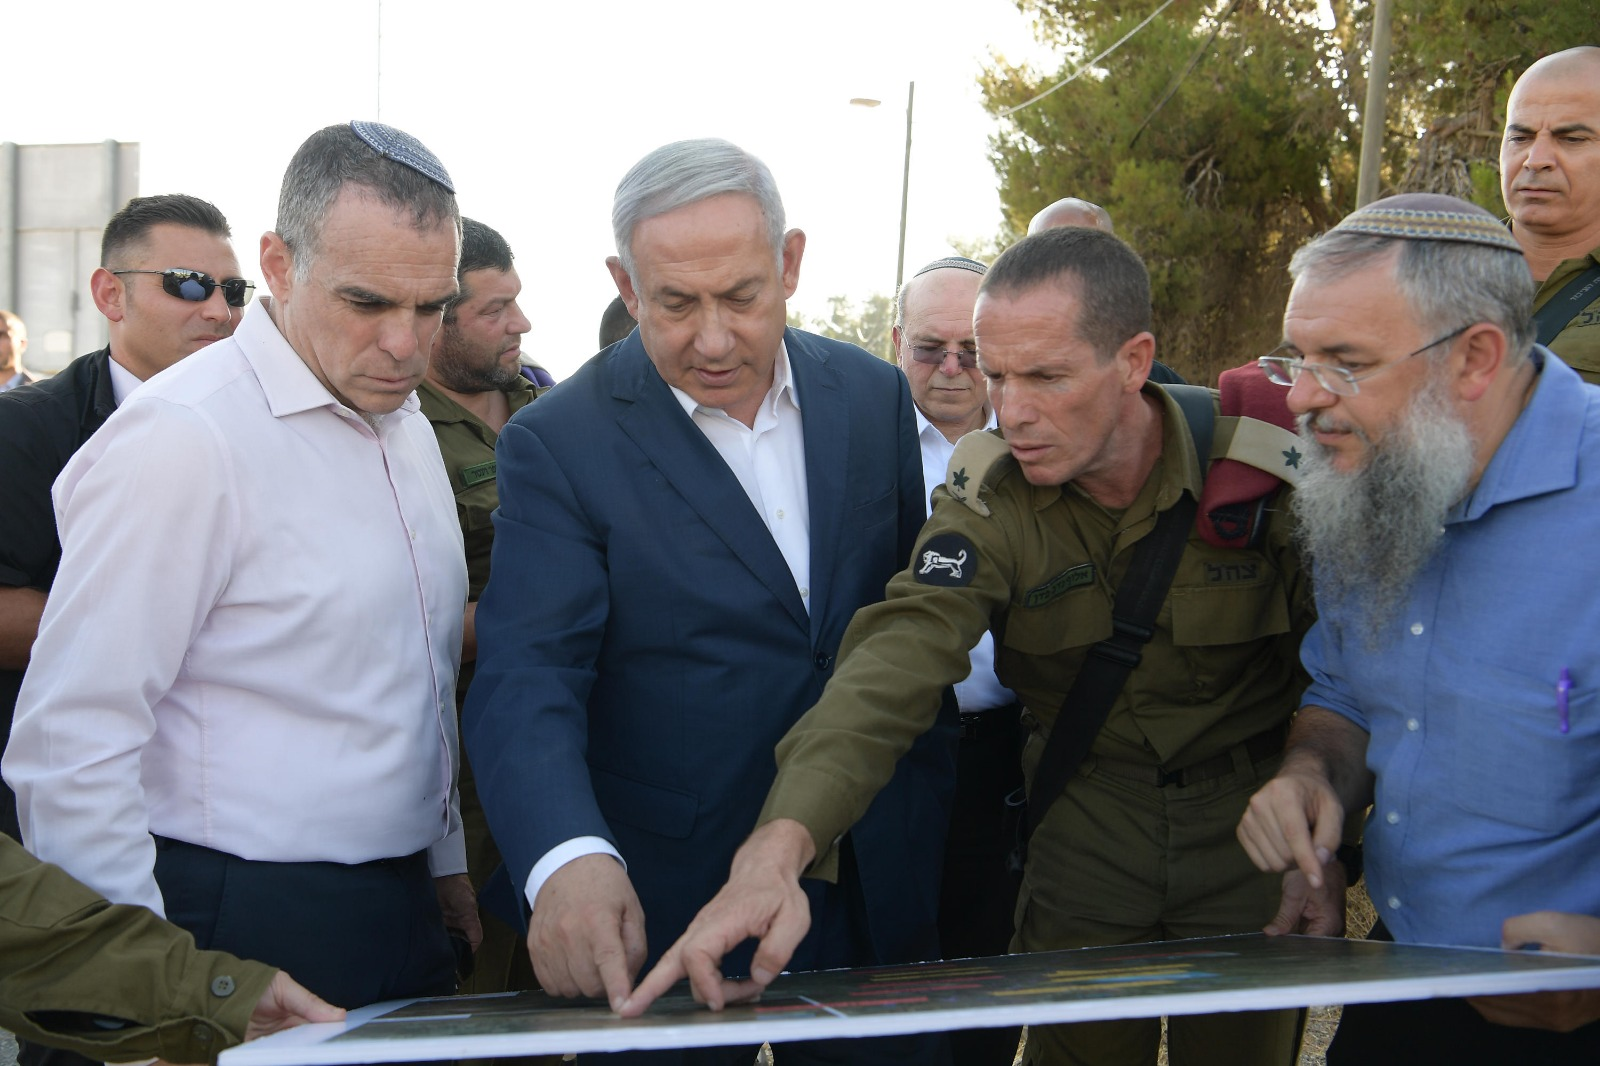 PM Netanyahu with Efrat Mayor Oded Ravivi and Gush Etzion Mayor Shlomo Neeman Photo credit Amos Ben-Gershom GPO